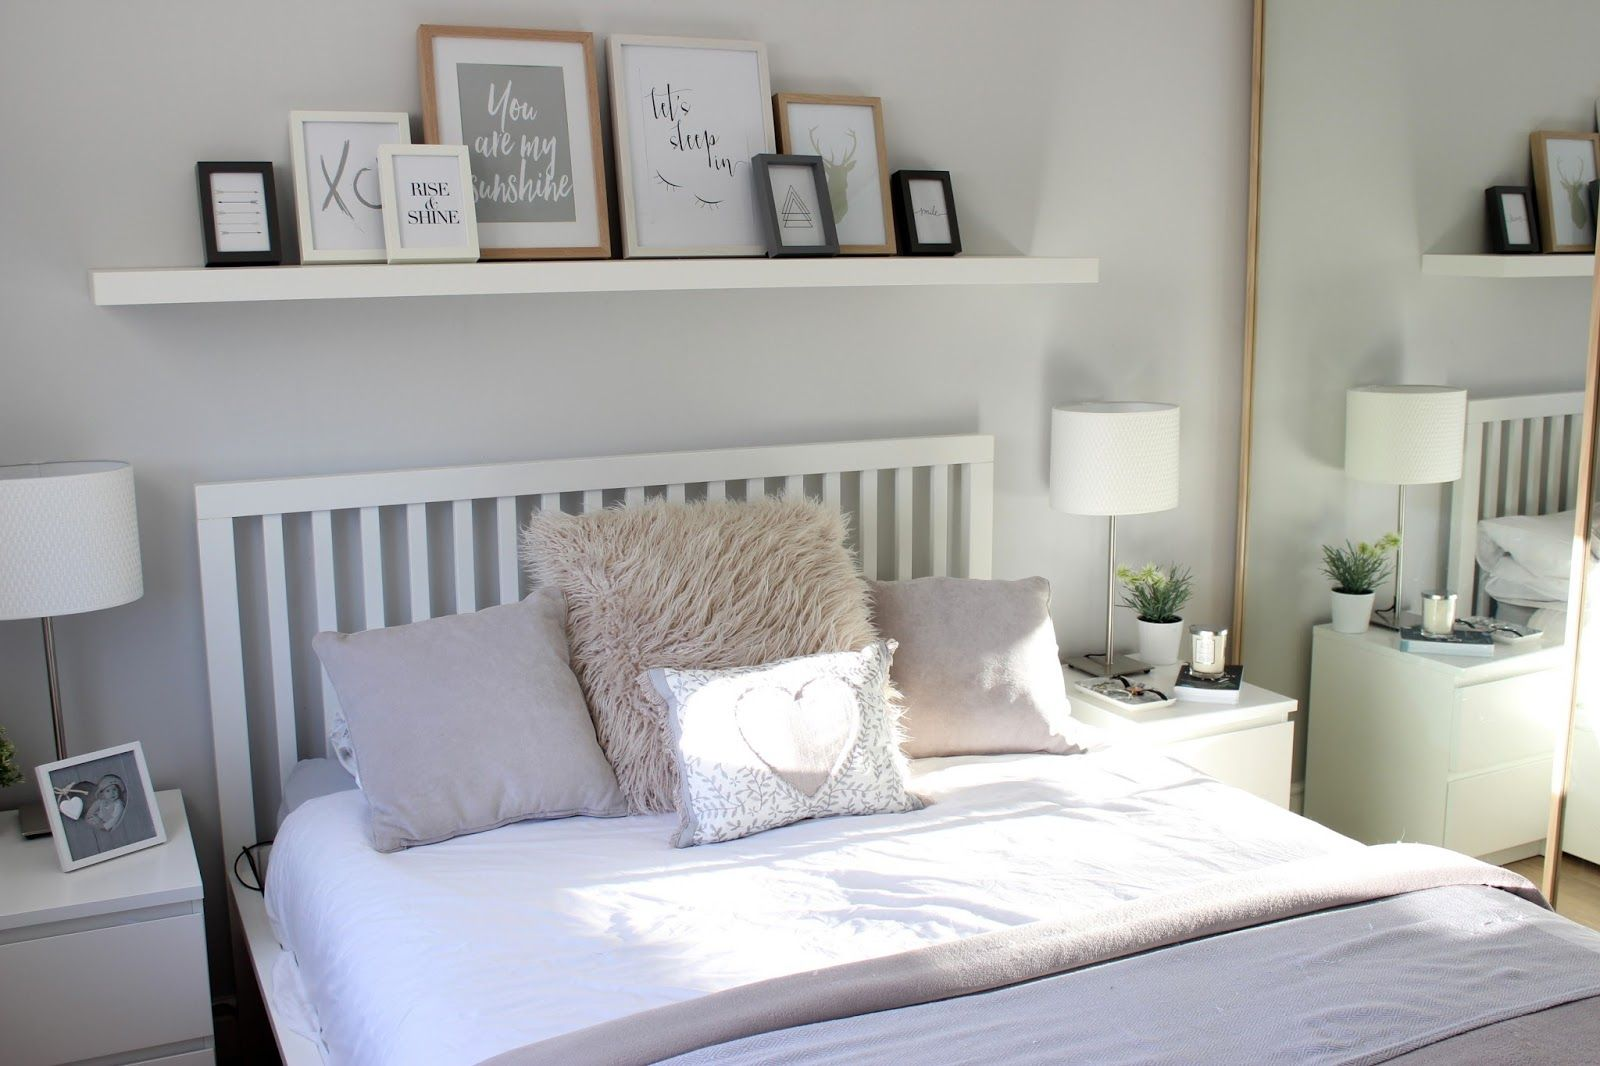 Shelves for ikea hacks to up your game this - Schlafzimmer graue wand ...